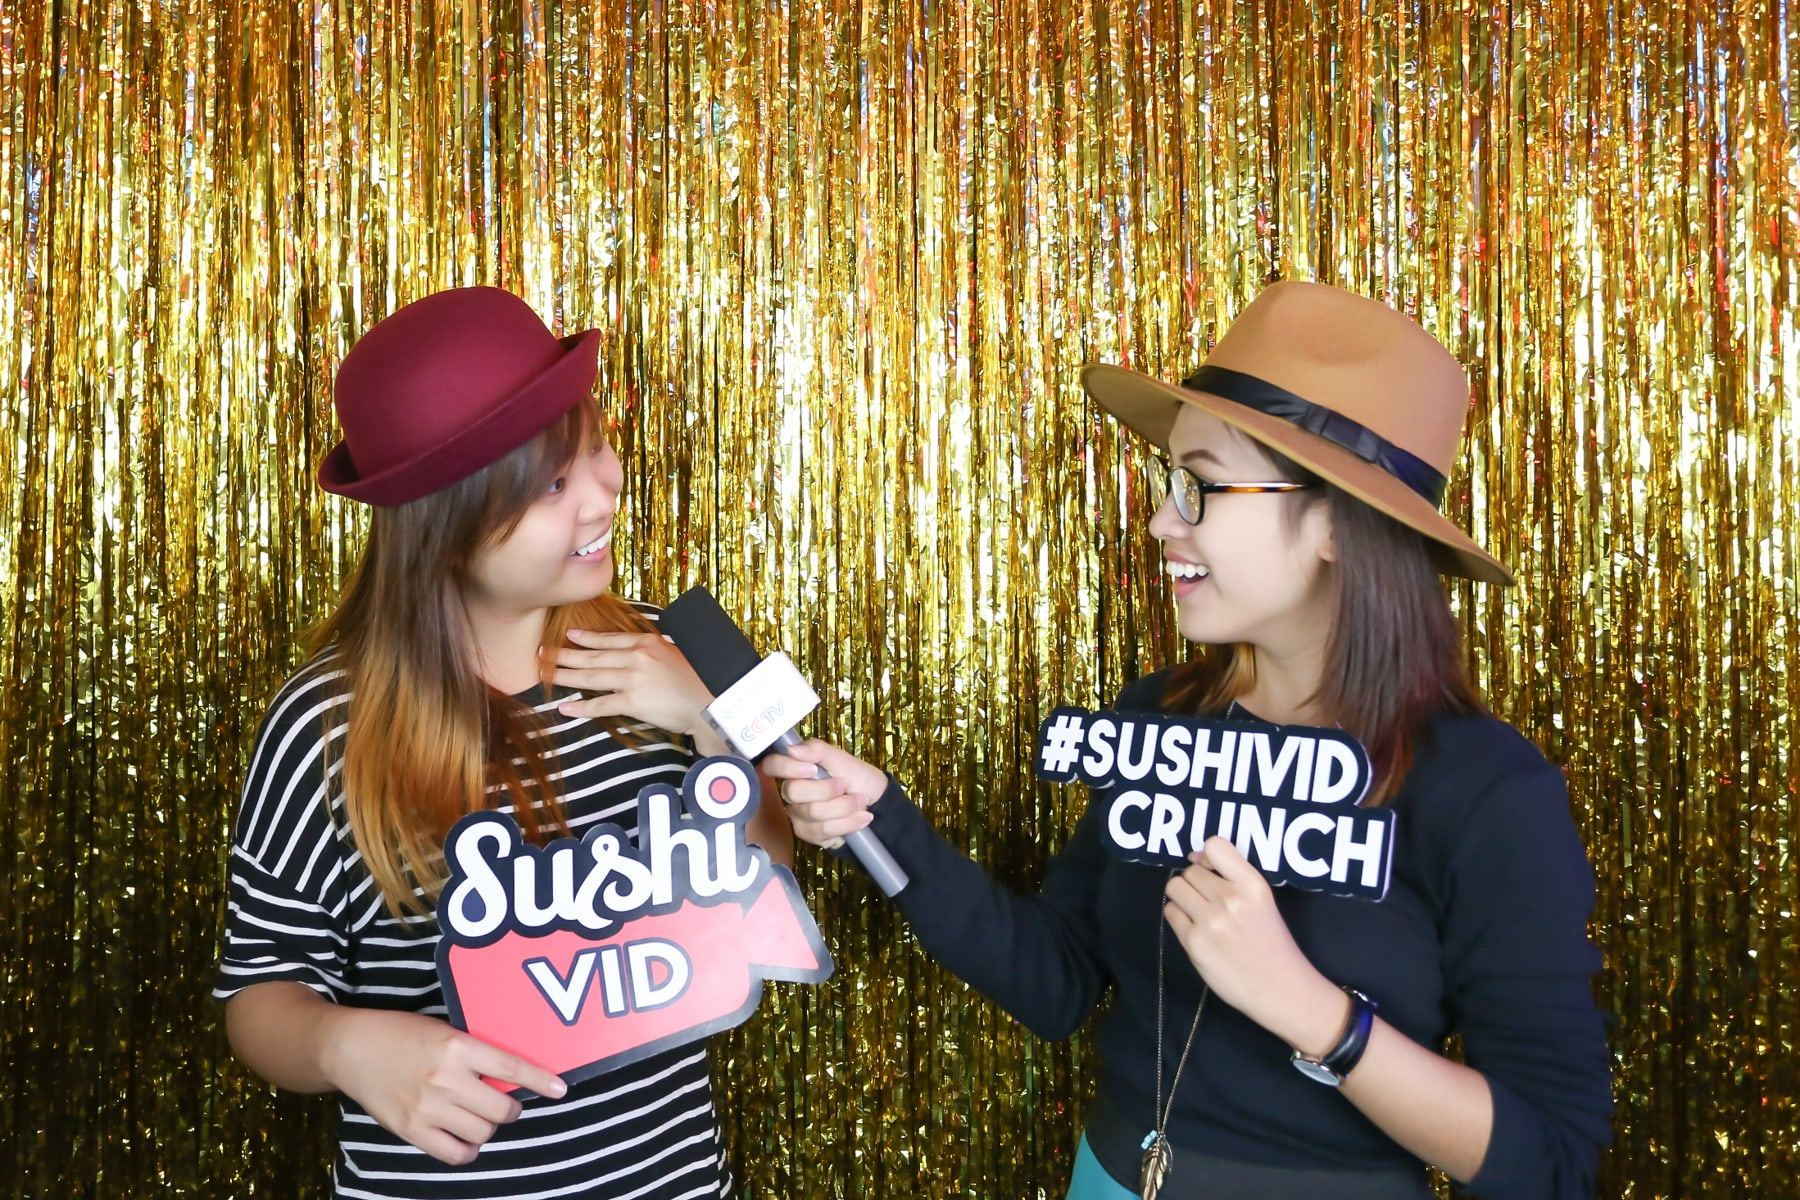 Sushivid+crunch+tagbooth+37